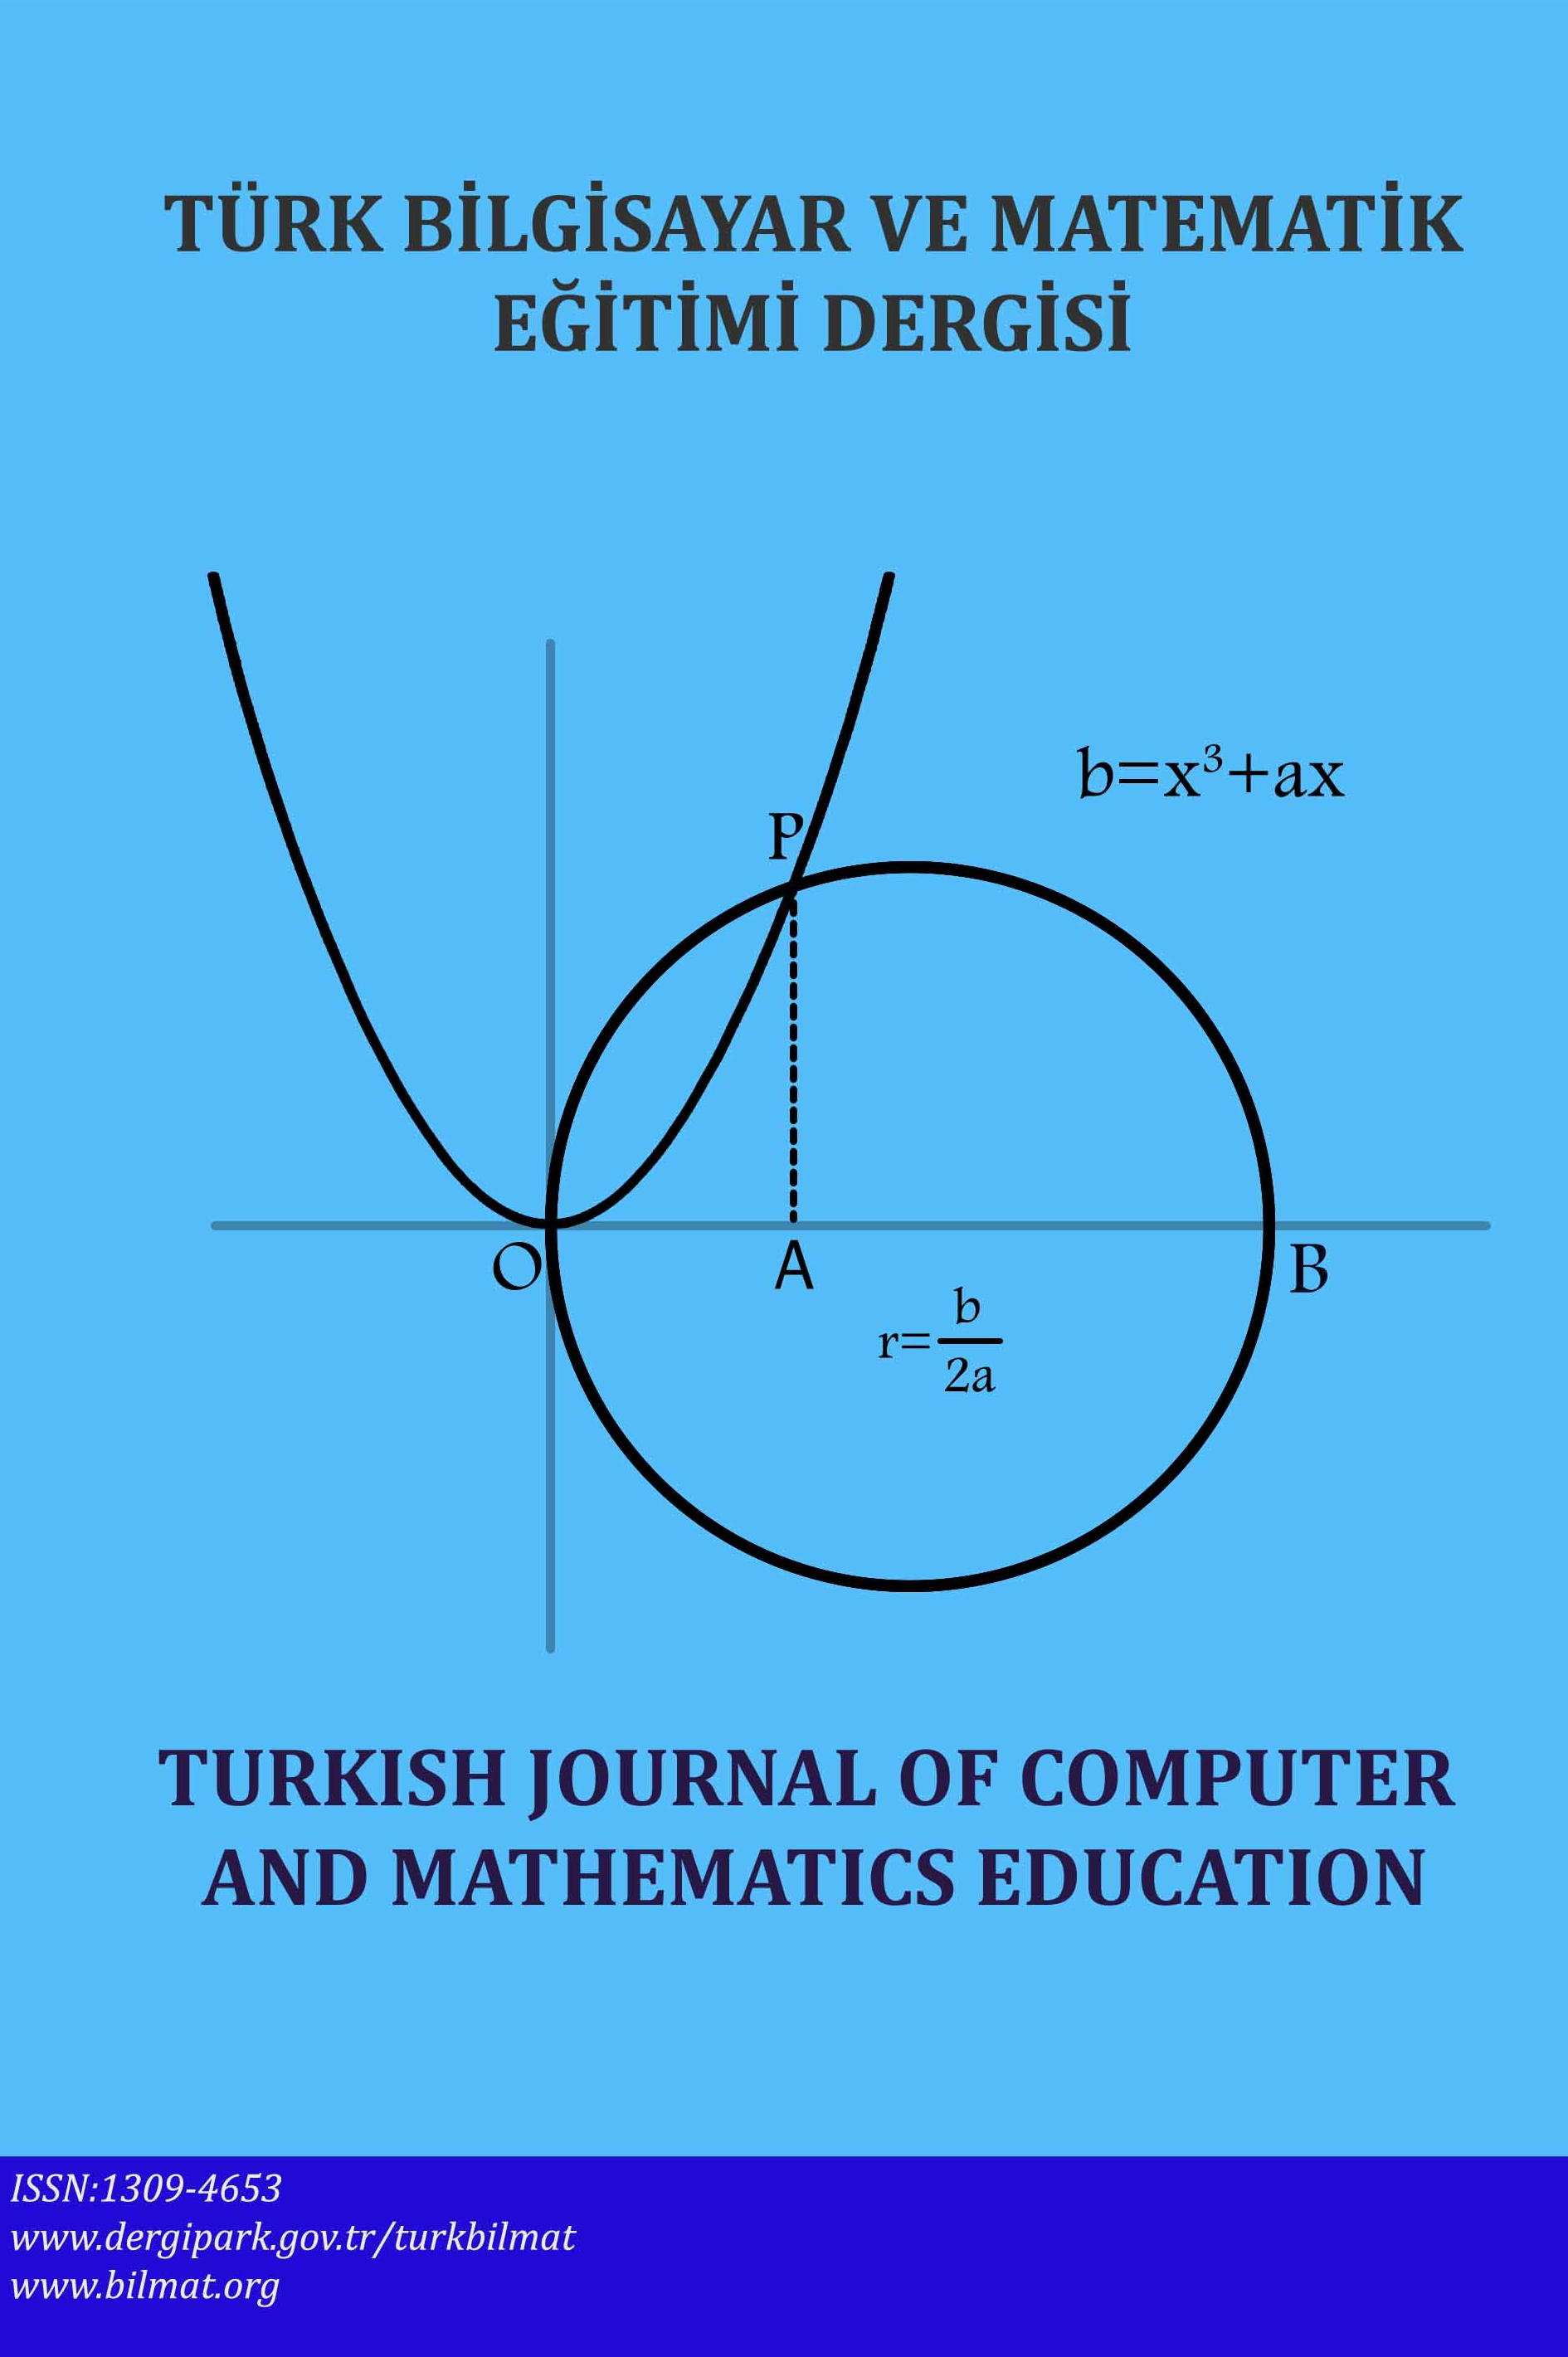 Turkish Journal of Computer and Mathematics Education (TURCOMAT)